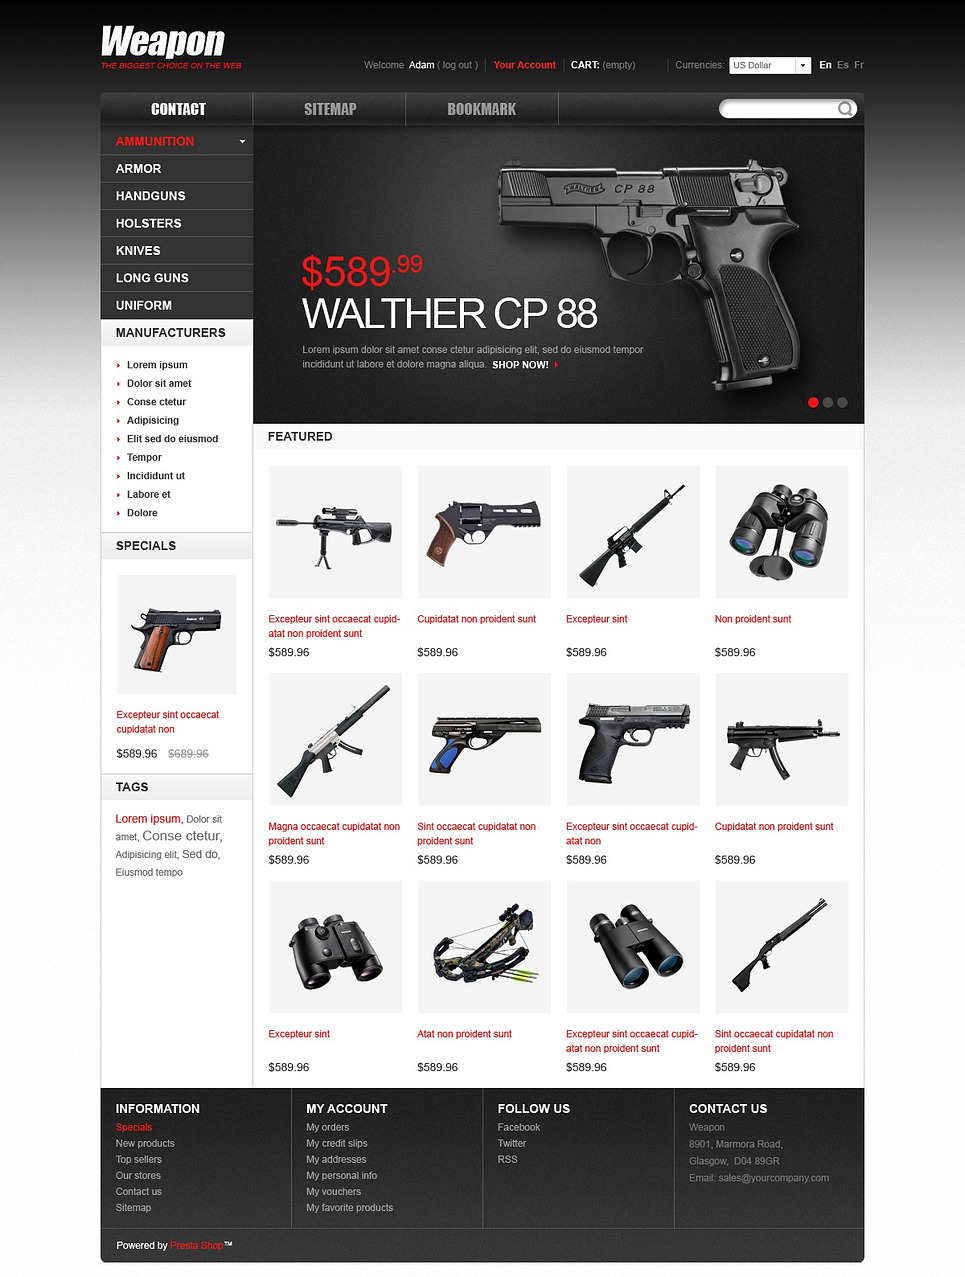 Compact Weapons for Sport & Safety Prestashop Theme